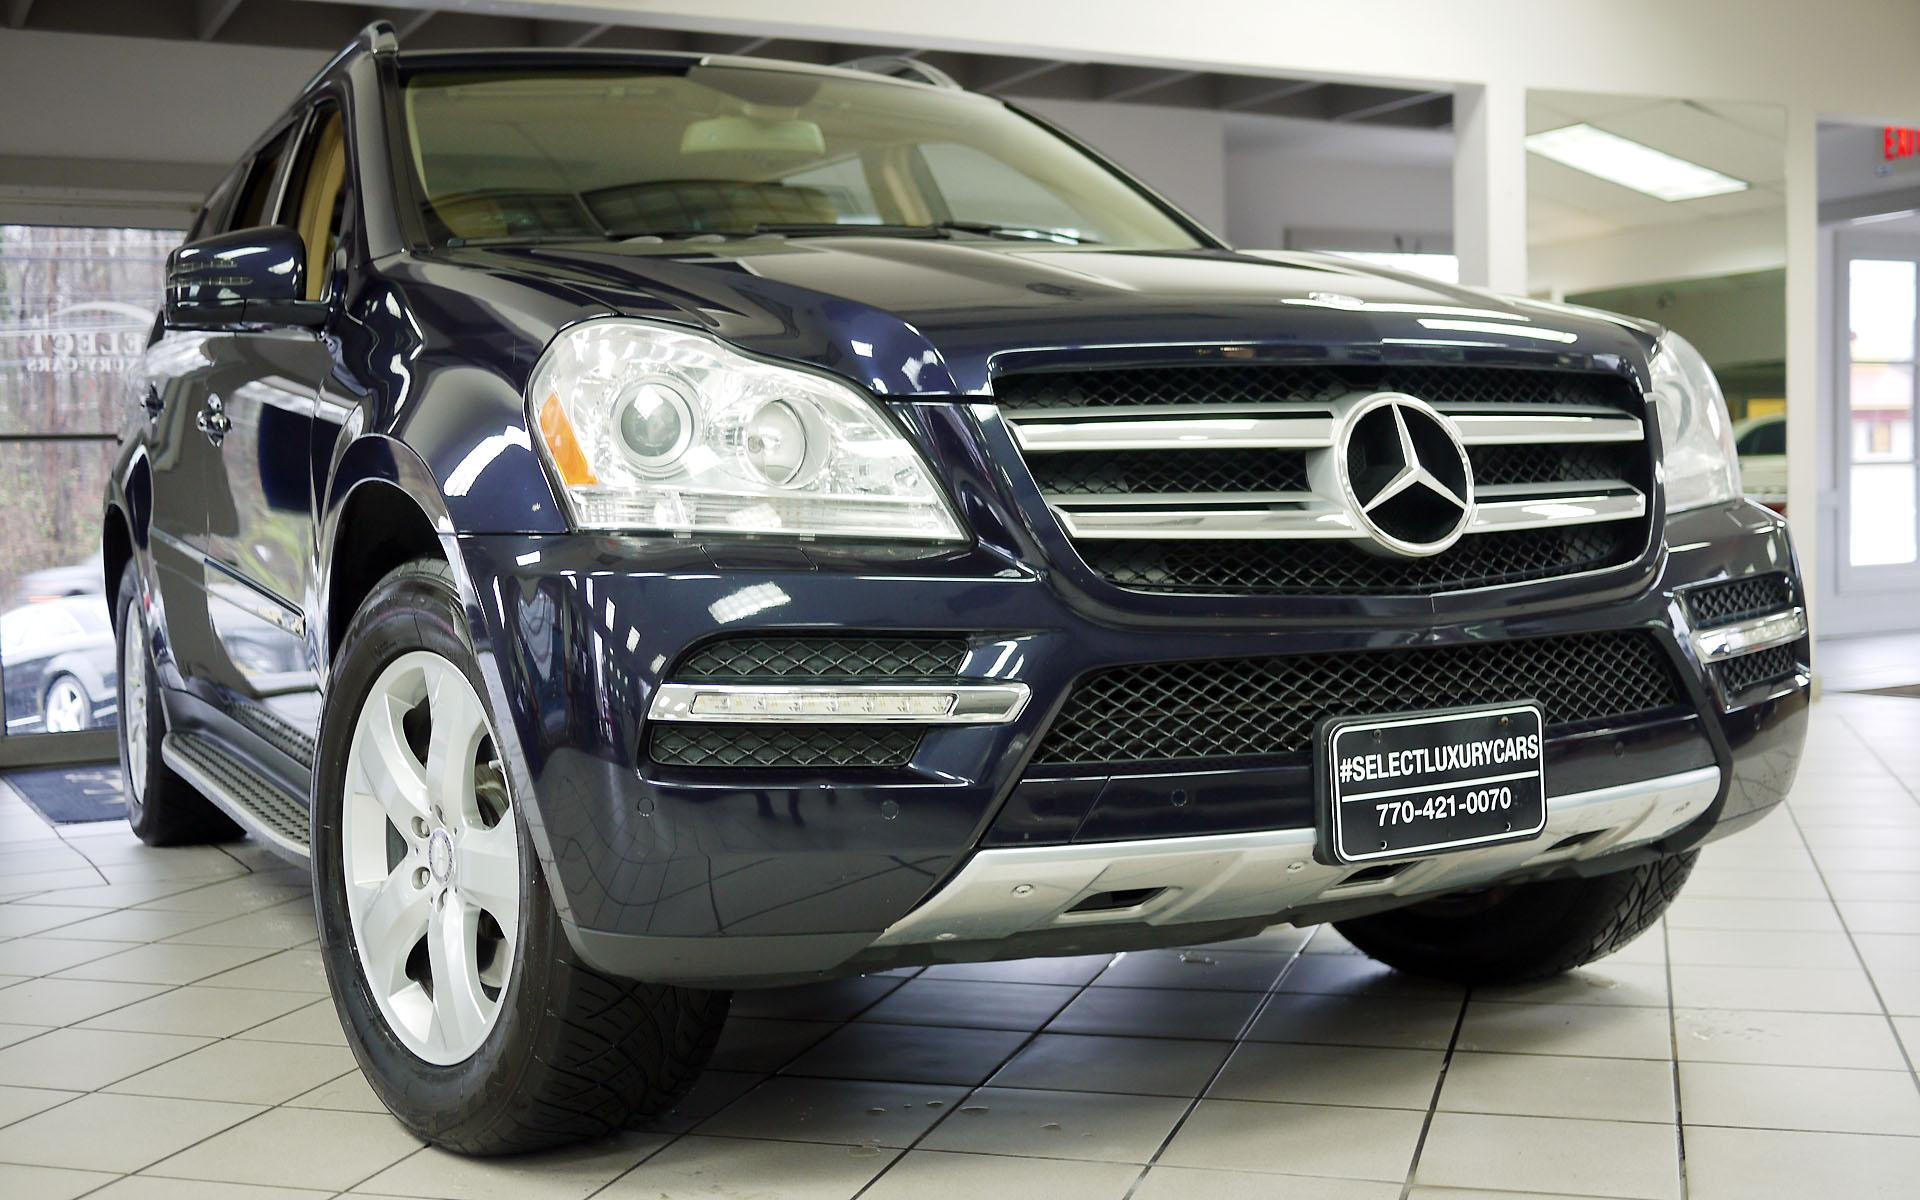 Used 2012 mercedes benz gl class gl450 marietta ga for Mercedes benz 2012 gl450